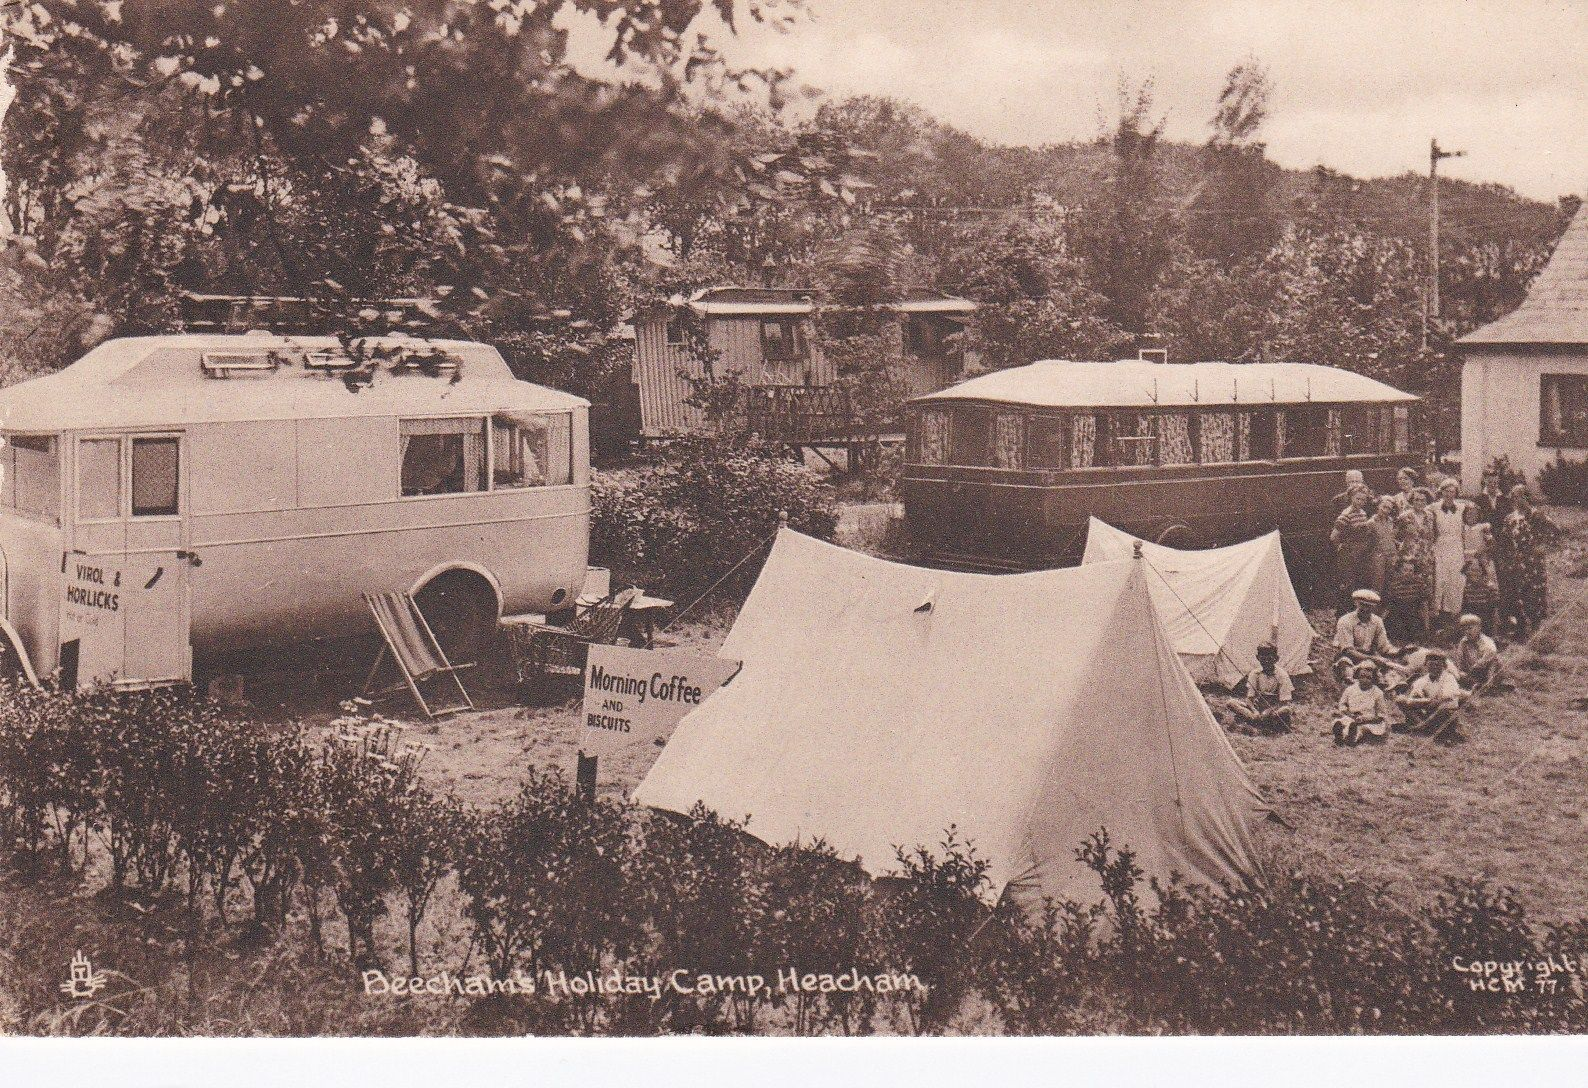 Beechams Holiday Camp Heacham.fab. mordern caravans.virol and horlicks for sale | eBay